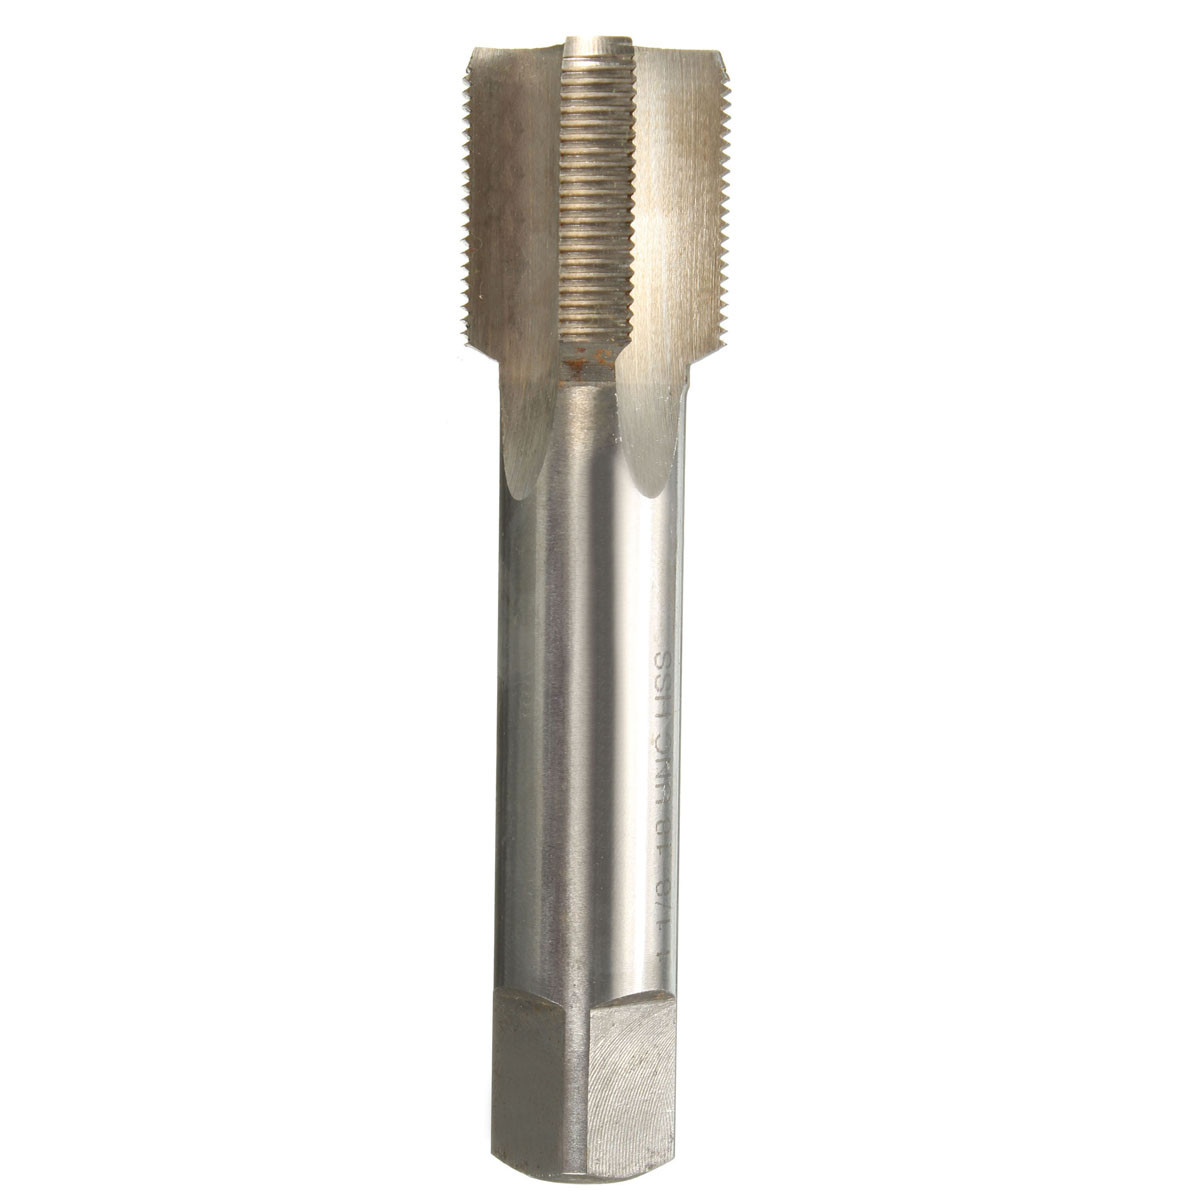 product 1PC 1/8\ - 18 HSS Right Hand Thread Tap 1 1/8 - 18 TPI Hand Tools